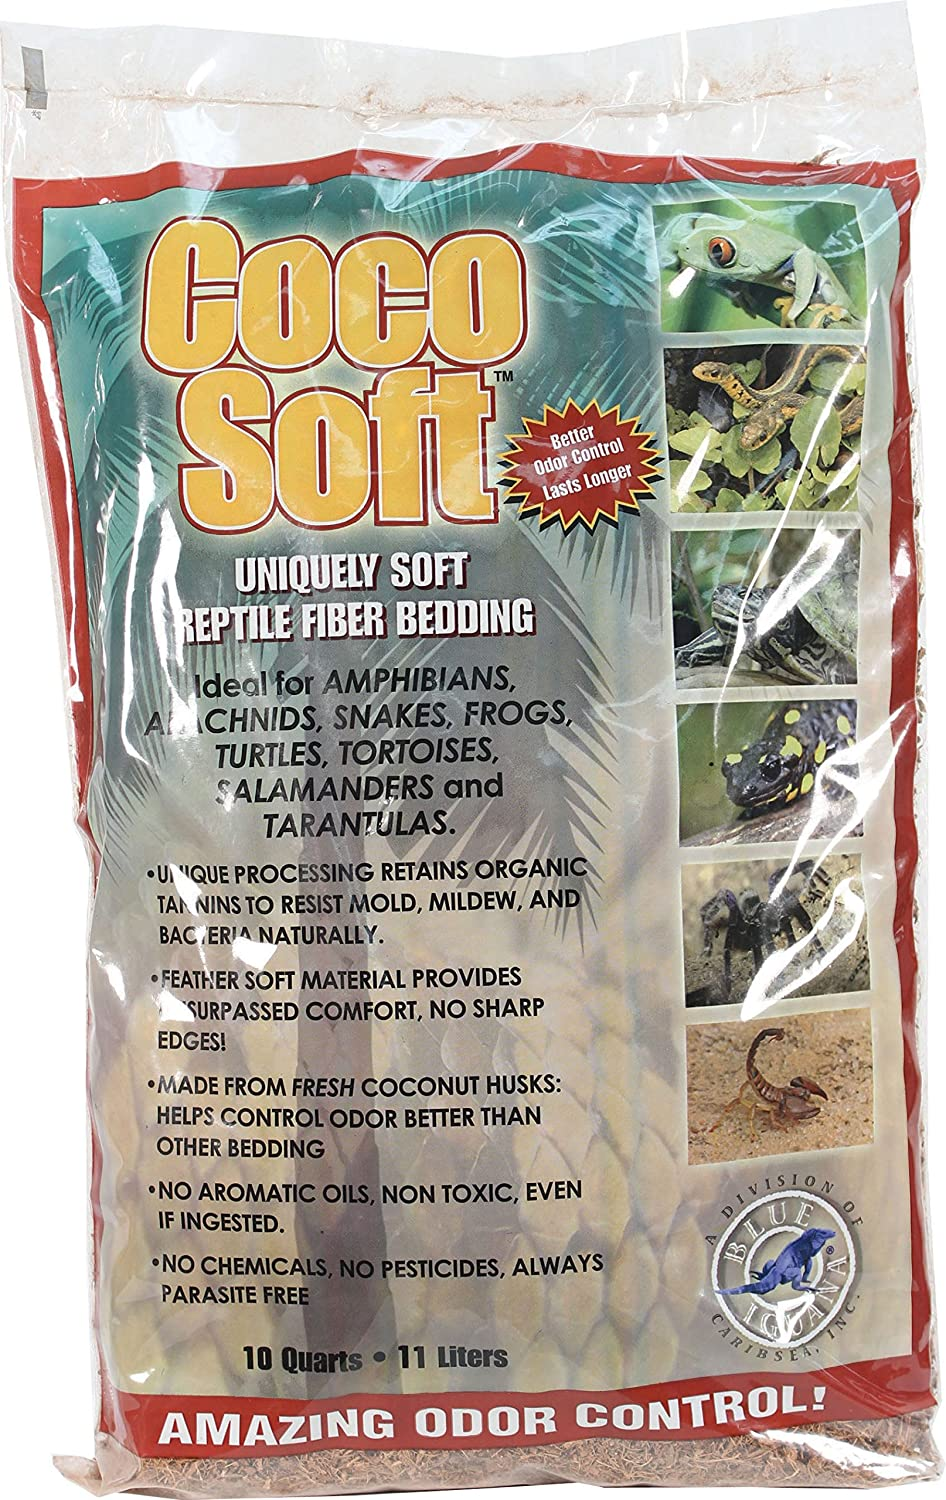 Carib Sea Coco Soft Fiber